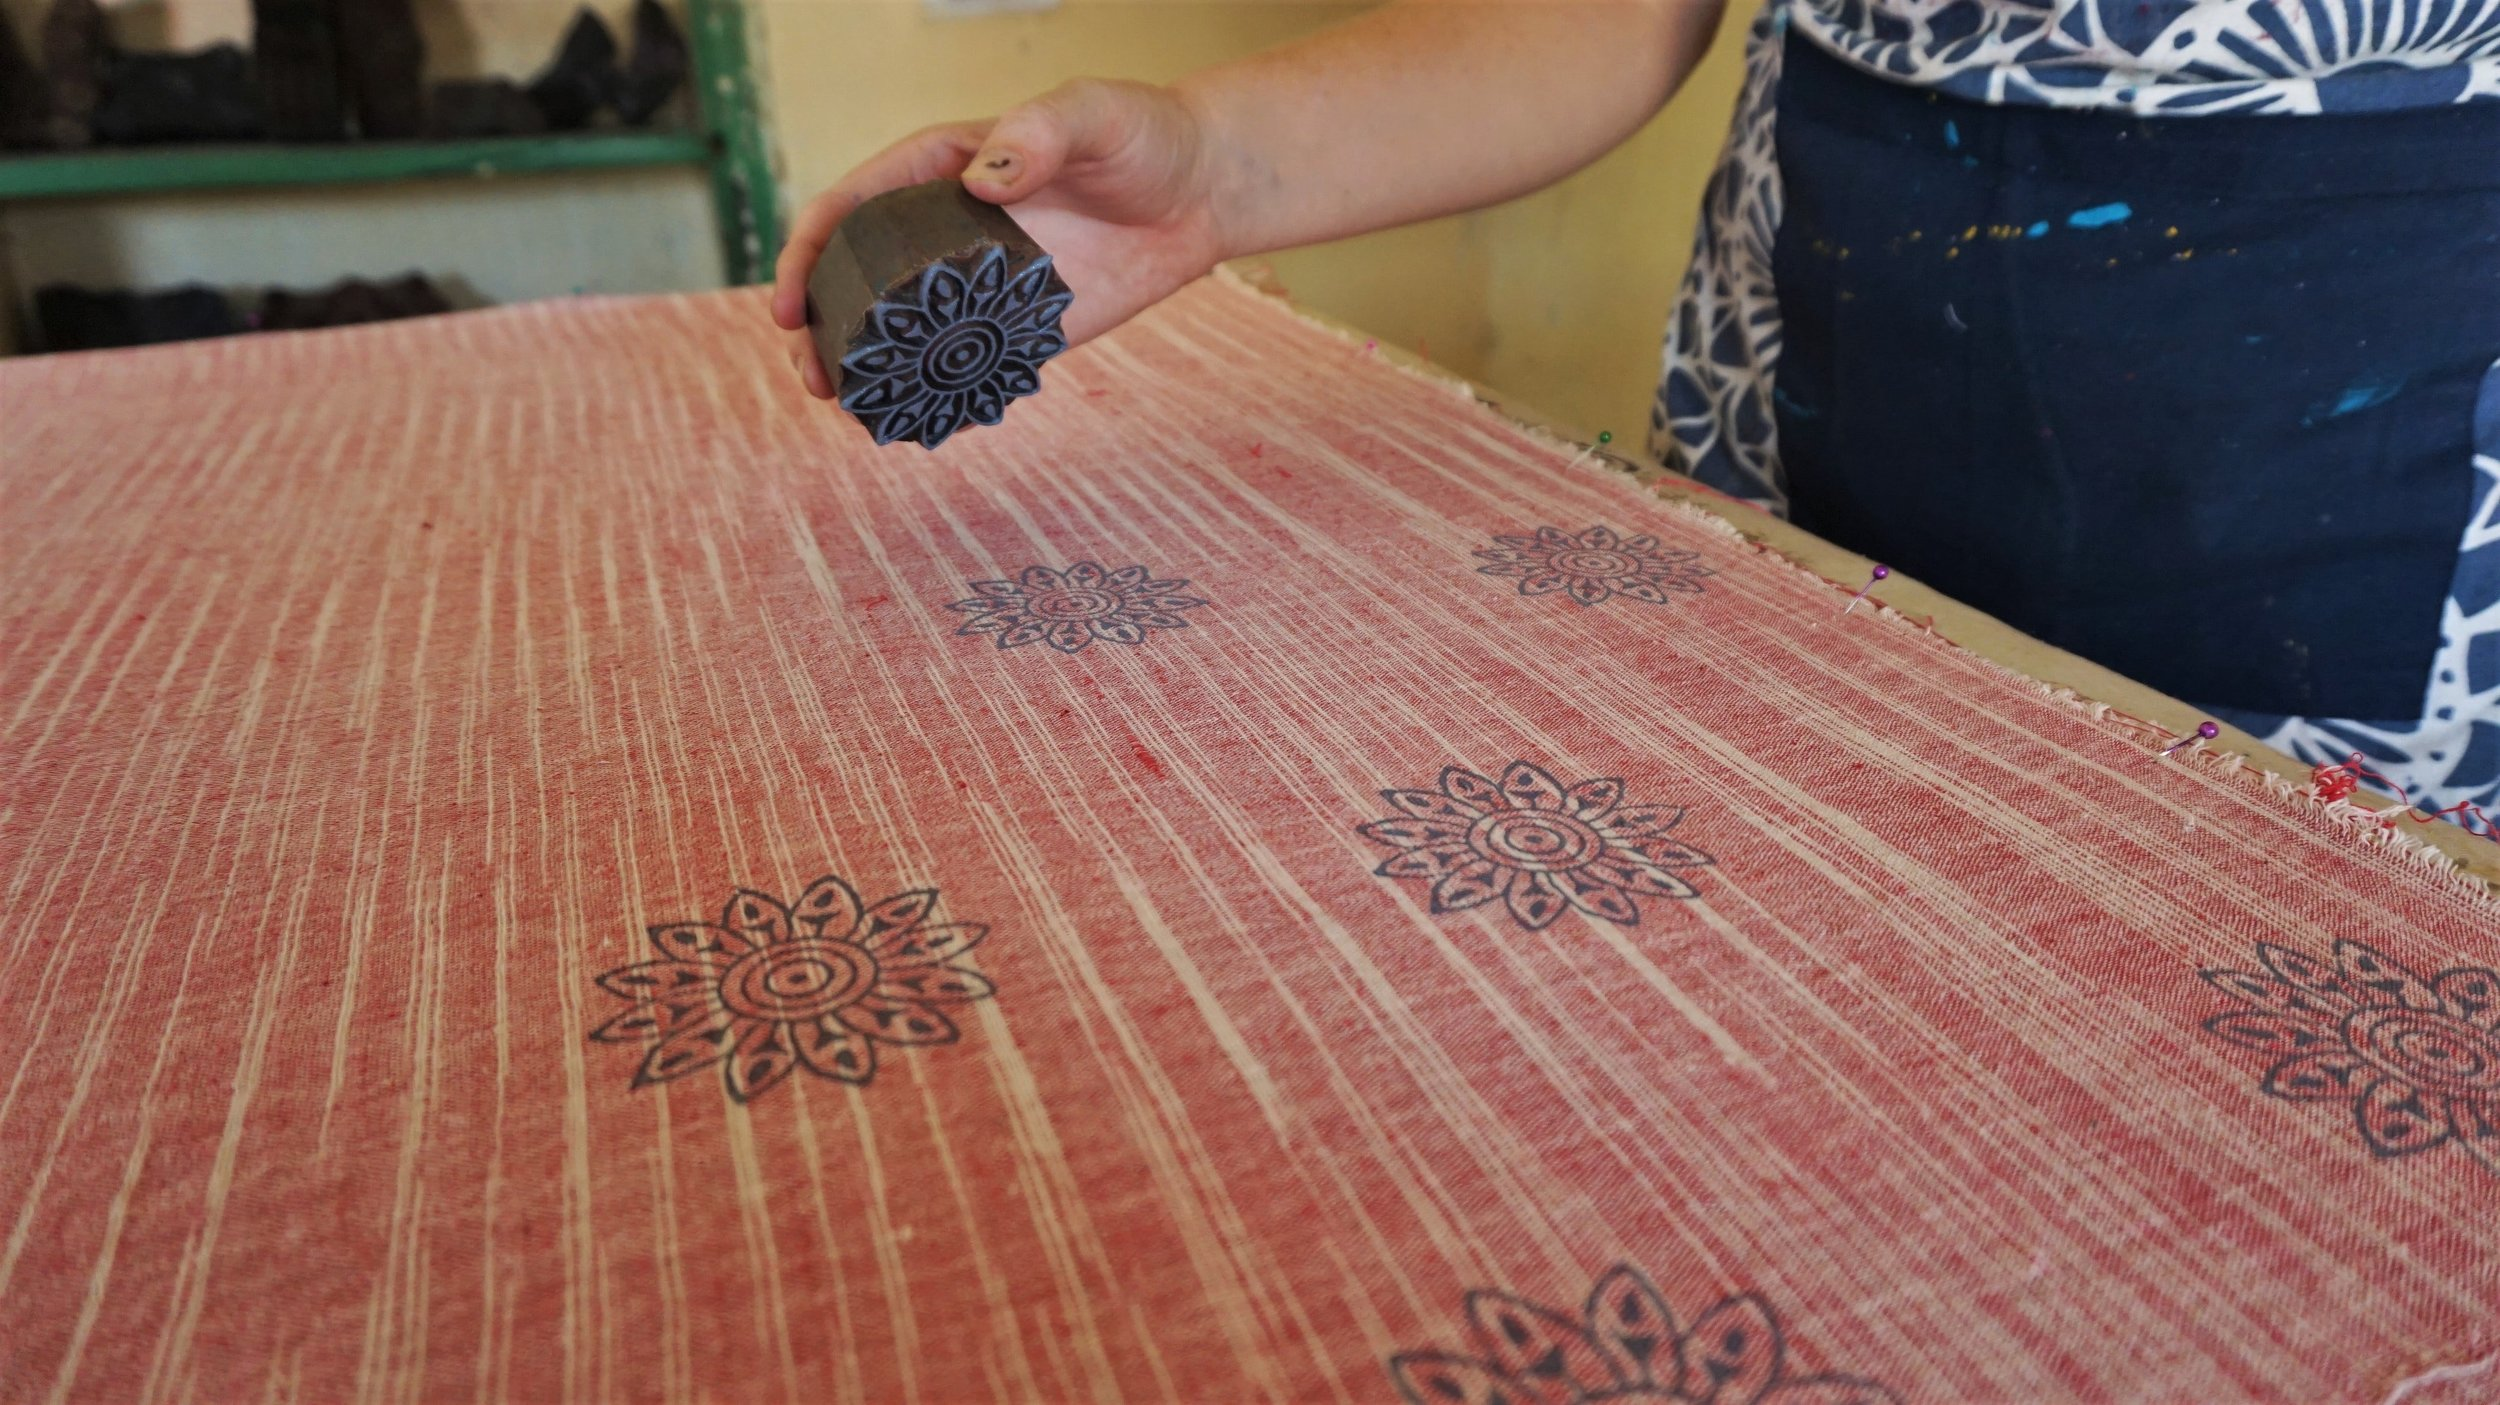 Arts and crafts workshops are a great thing to explore and learn in Mysore.